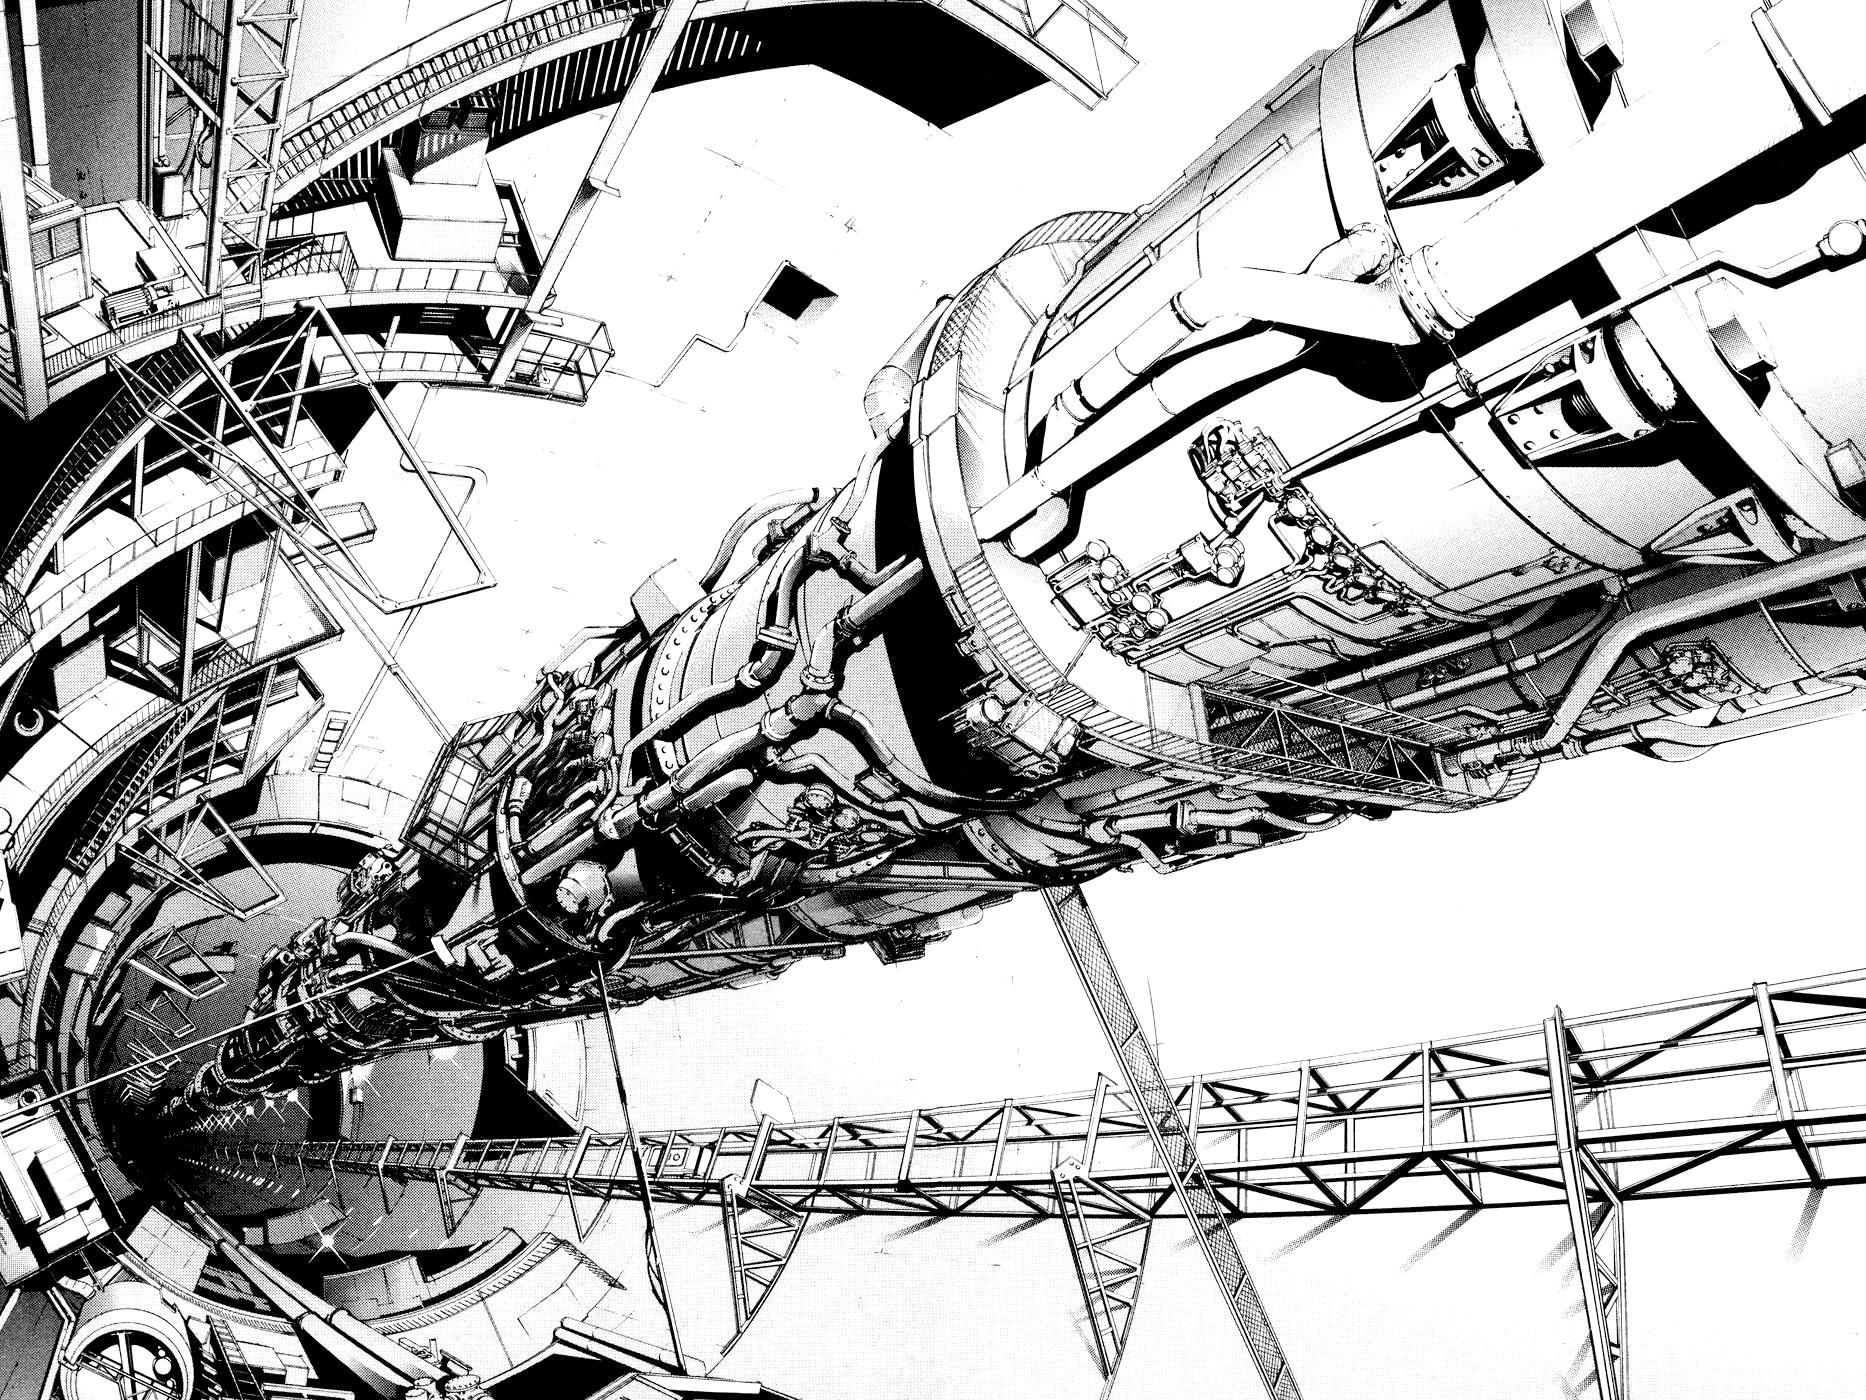 Air Gear: Works of oh! great - Minitokyo